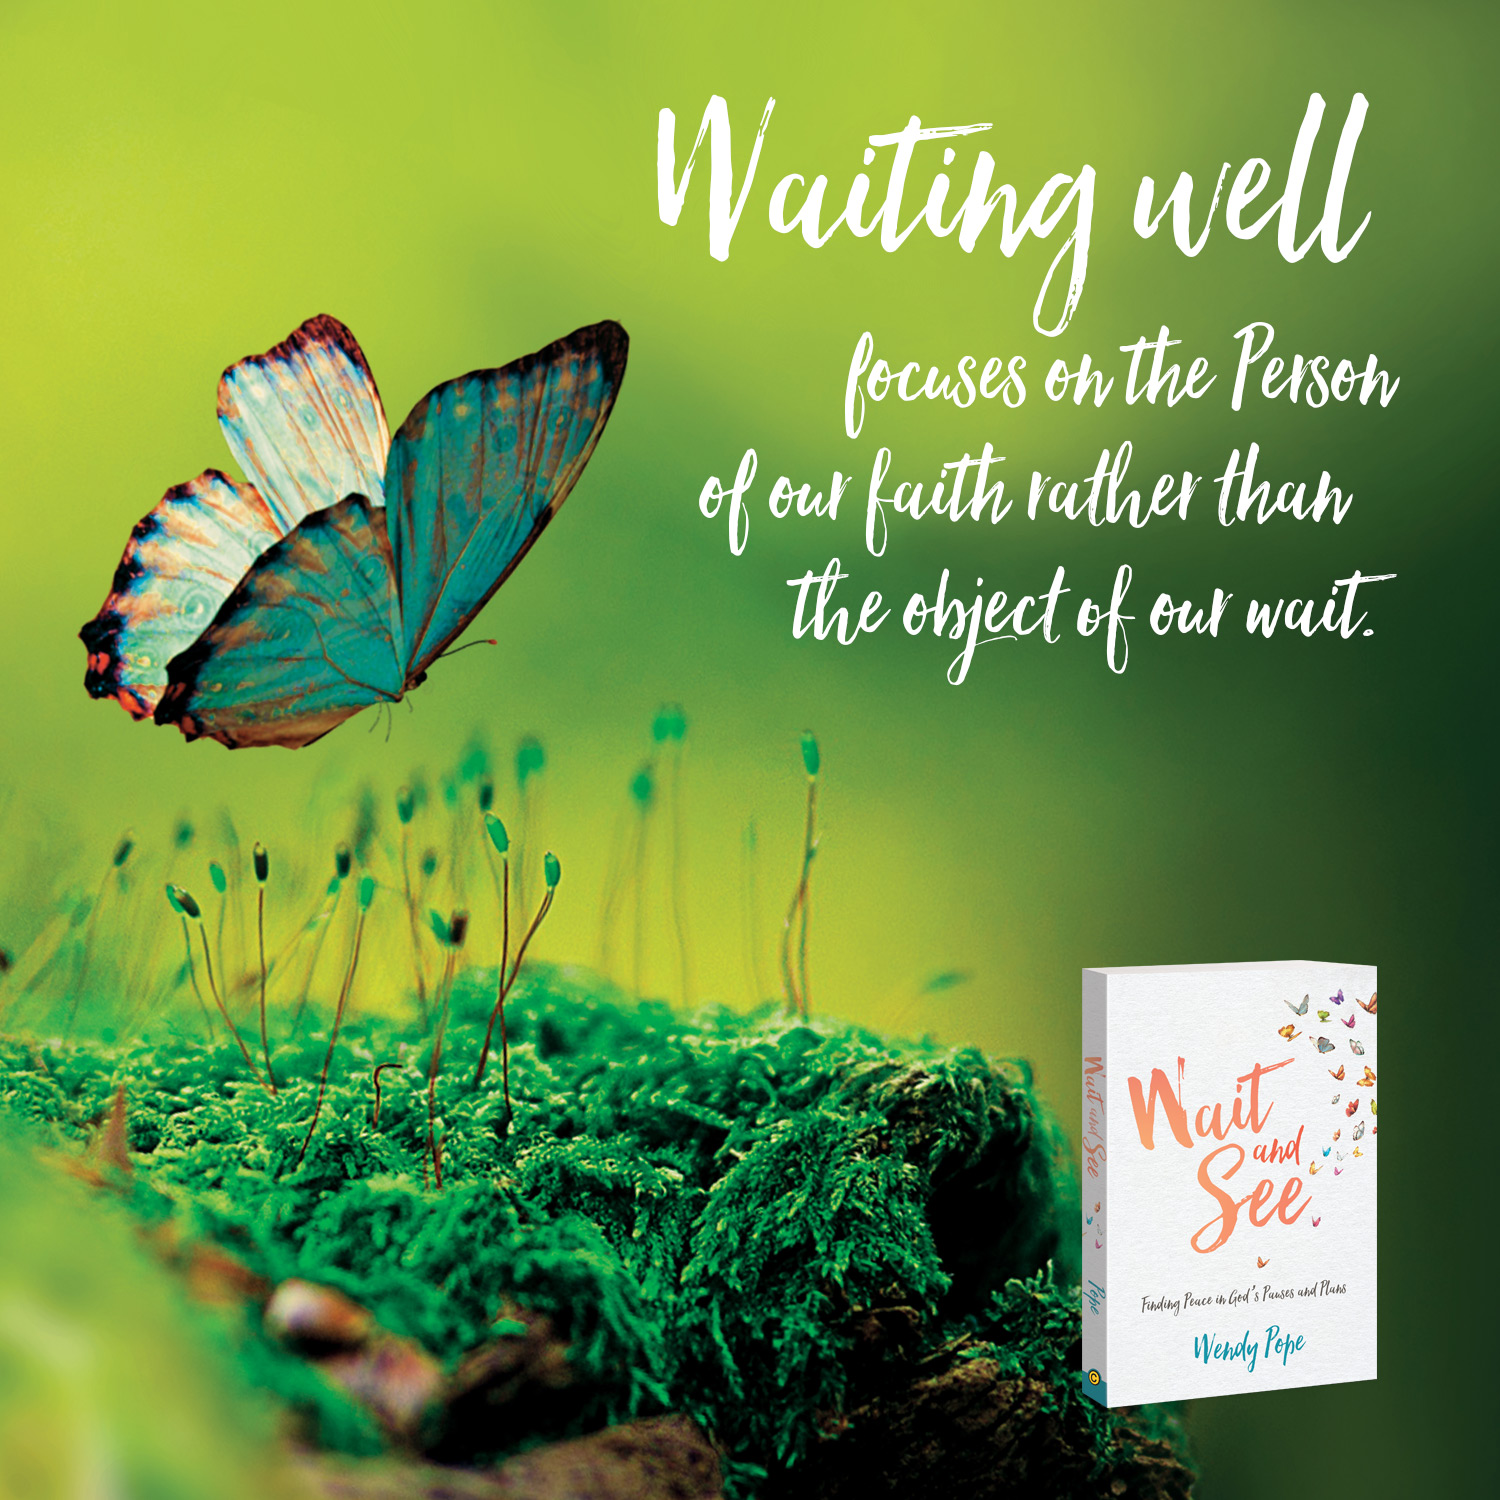 Waiting well focuses on the Person of our Faith rather than the object of our wait.